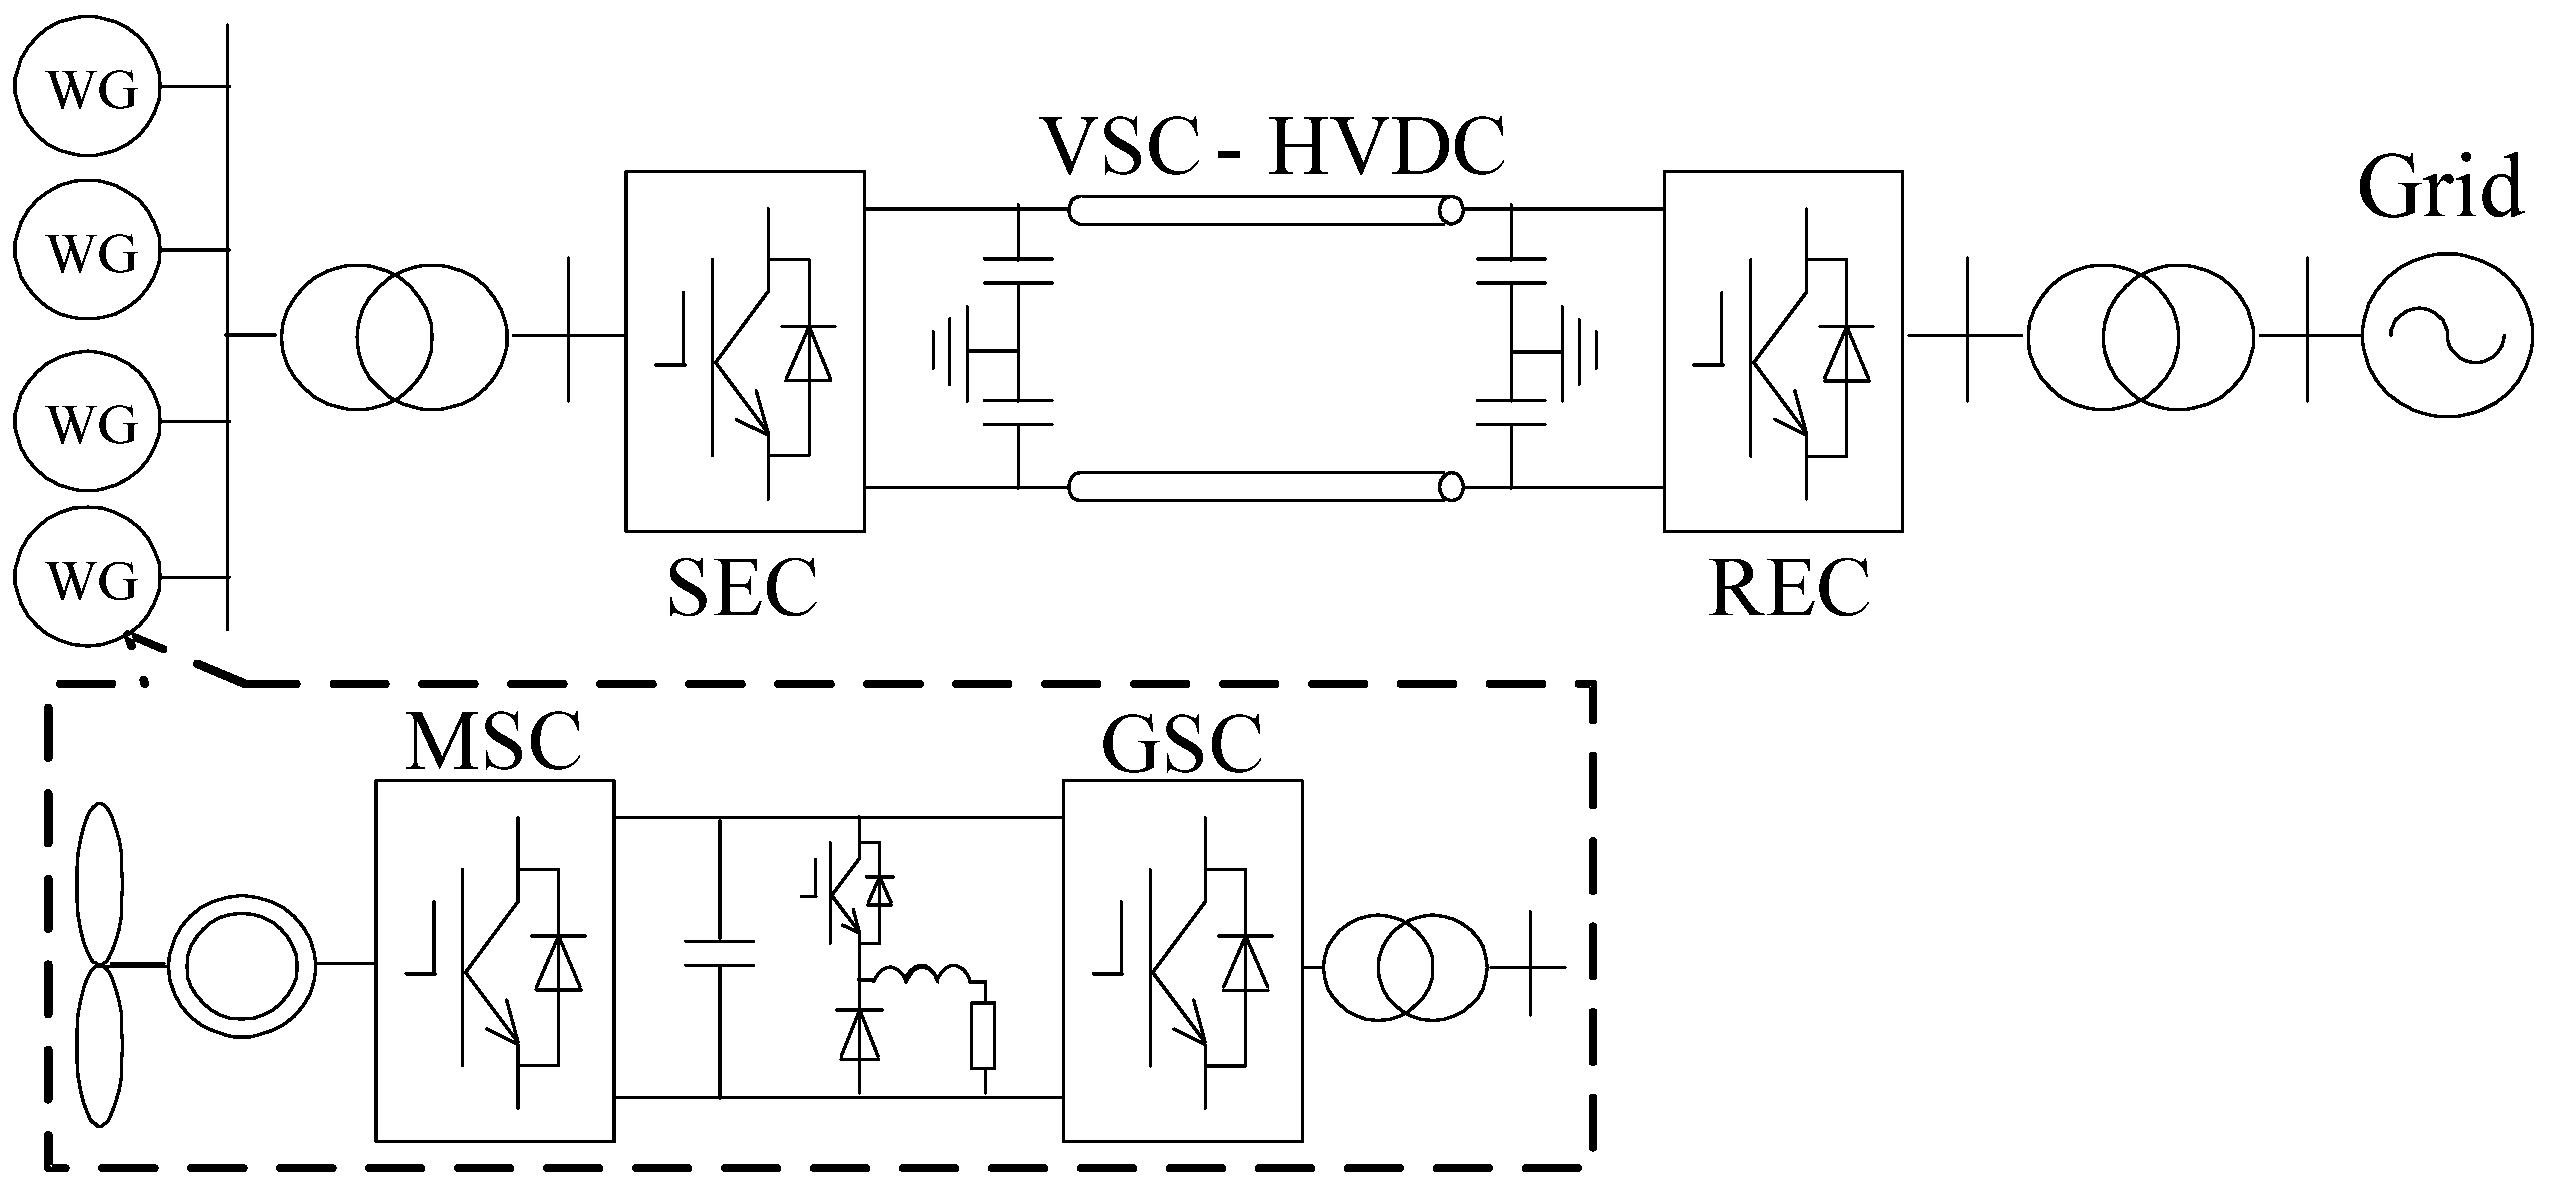 Modeling of Grid-Connected VSCs for Power System Small-Signal Stability Analysis in DC-Link Voltage Control Timescale